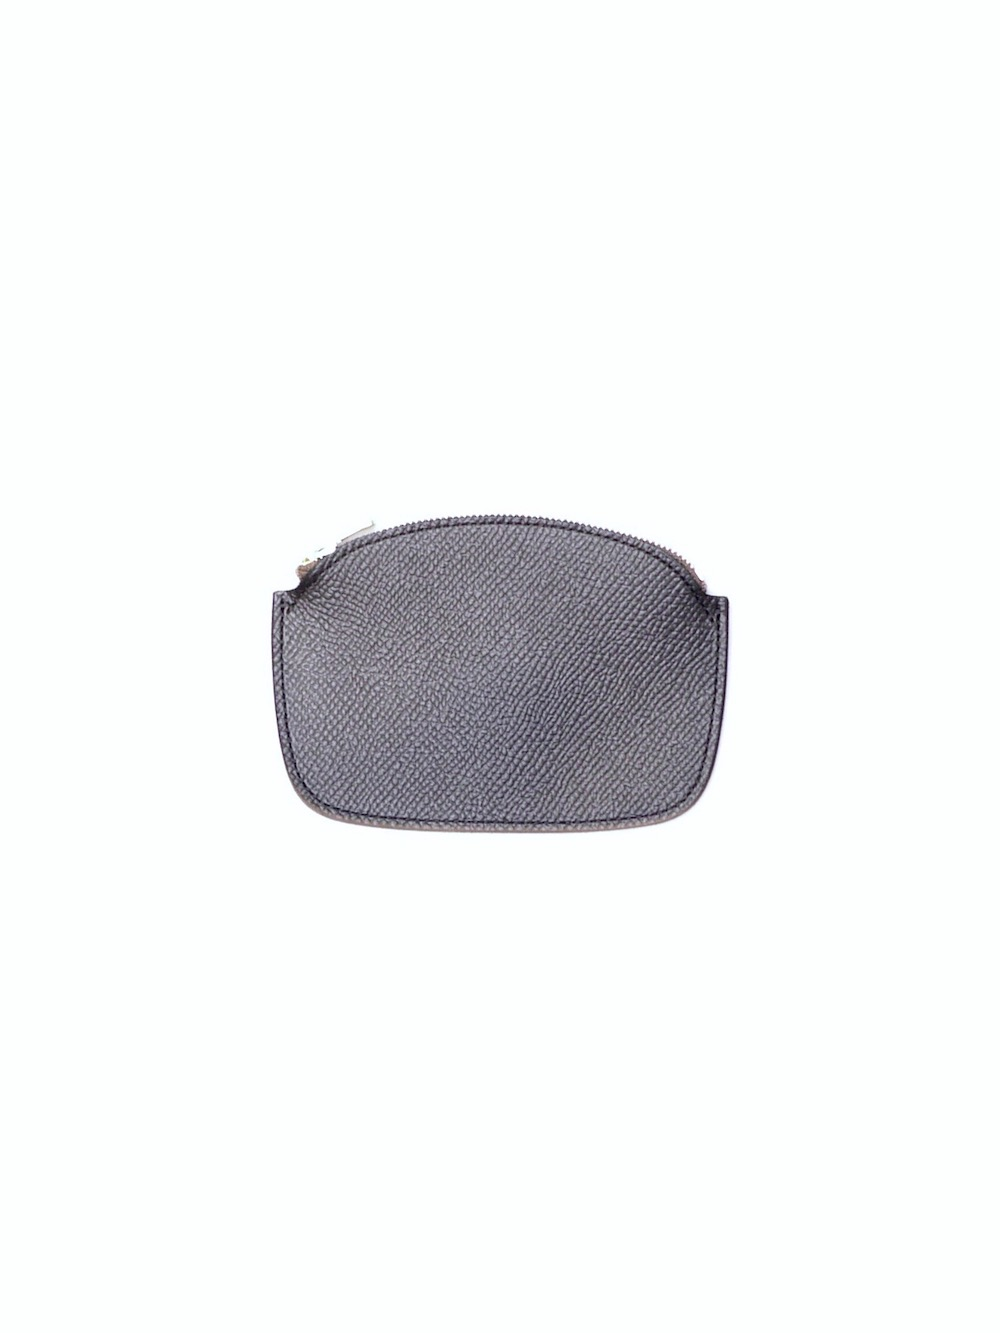 "forme / Coin Purse ""Noblessa calf / black"""